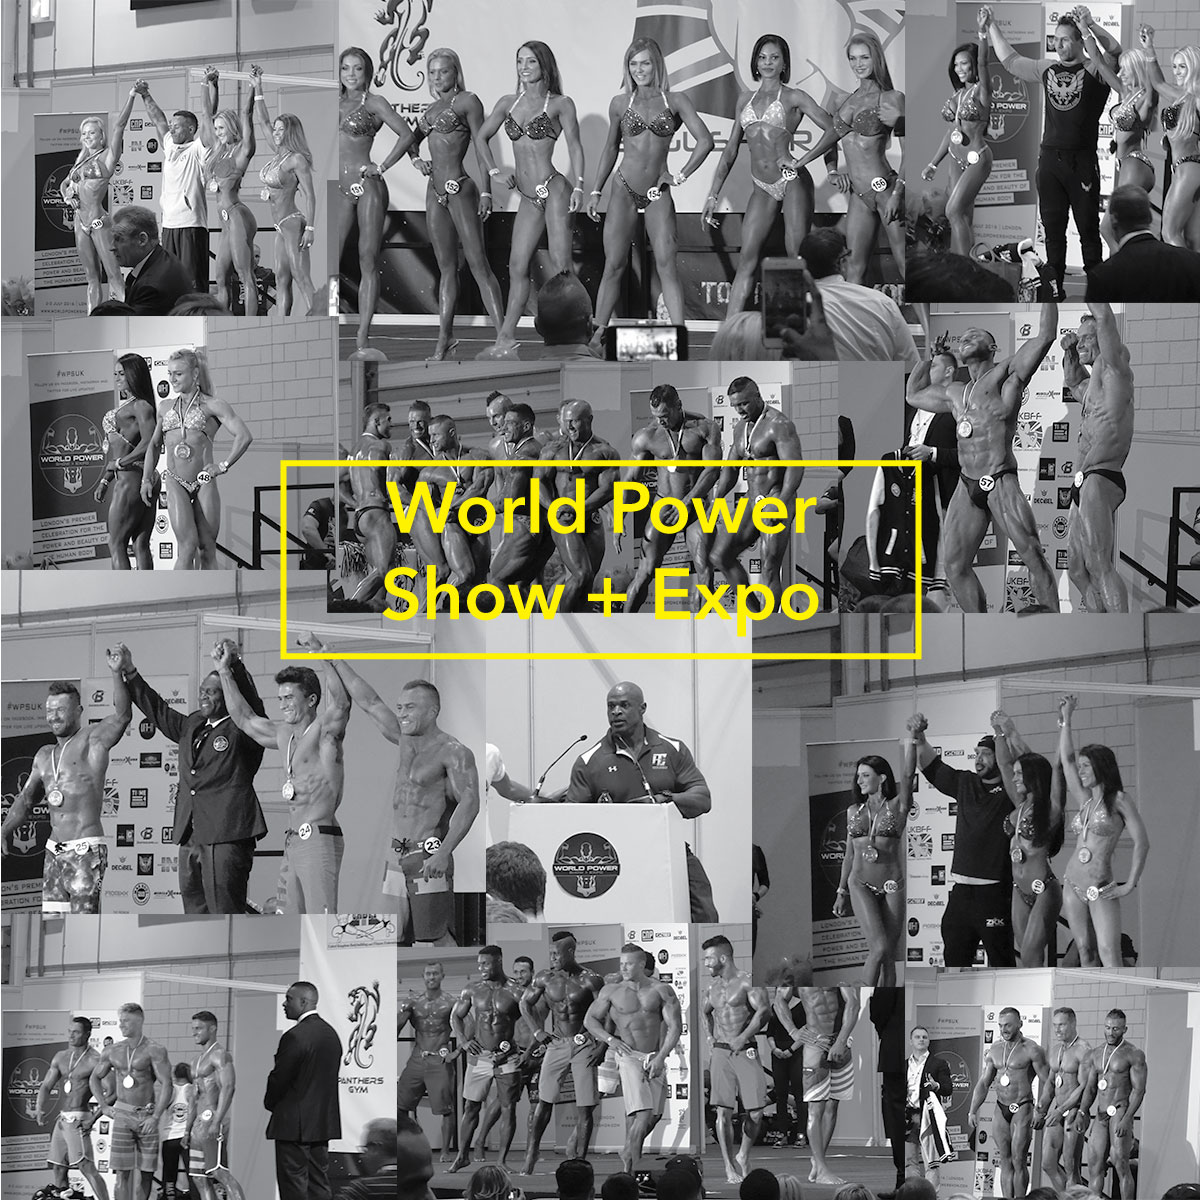 World Power Show + Expo